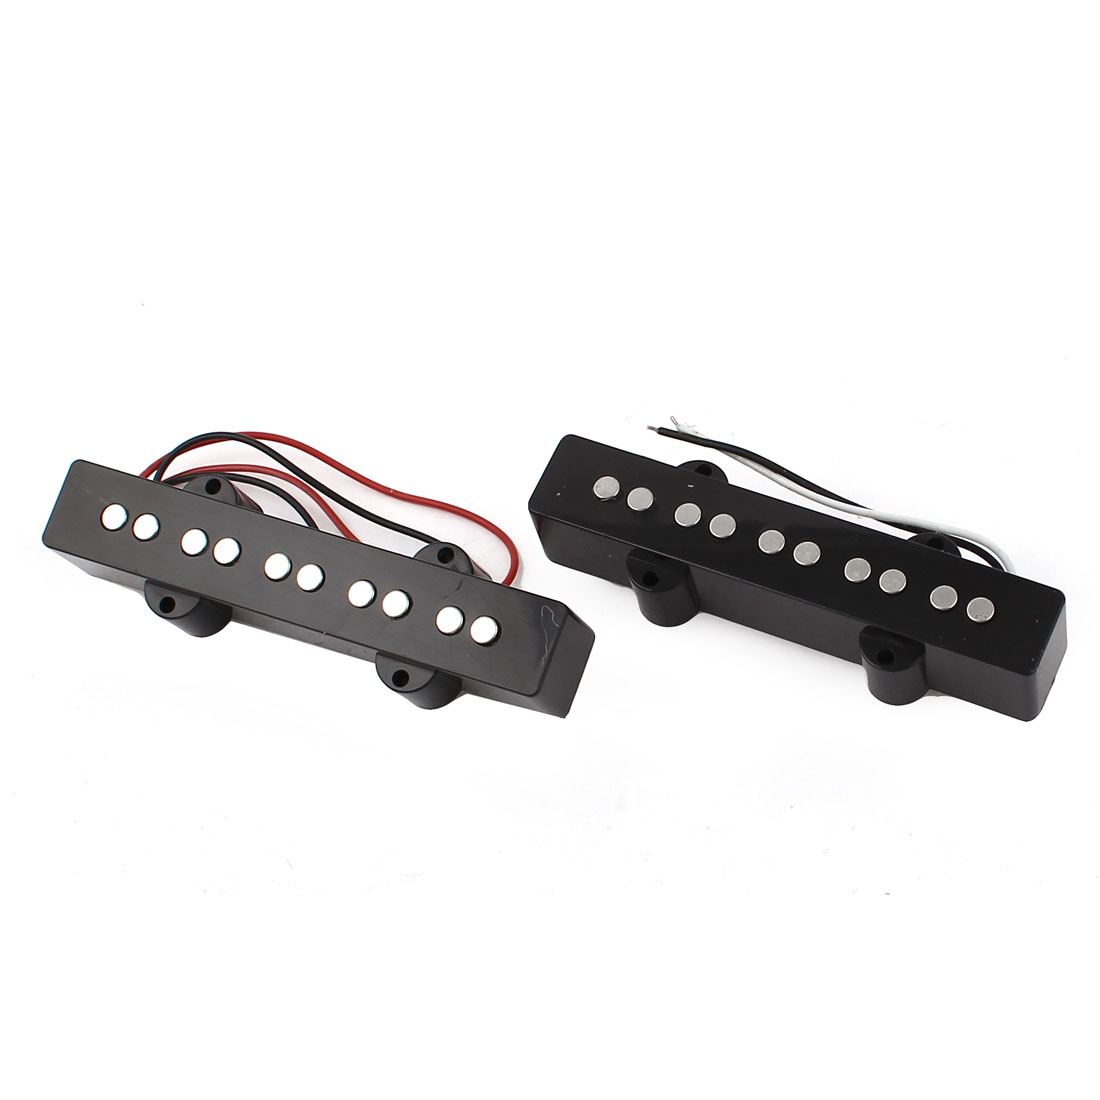 2 Pcs Electric 5 String Jazz Bass JB Style Soap Bar Pickup Black